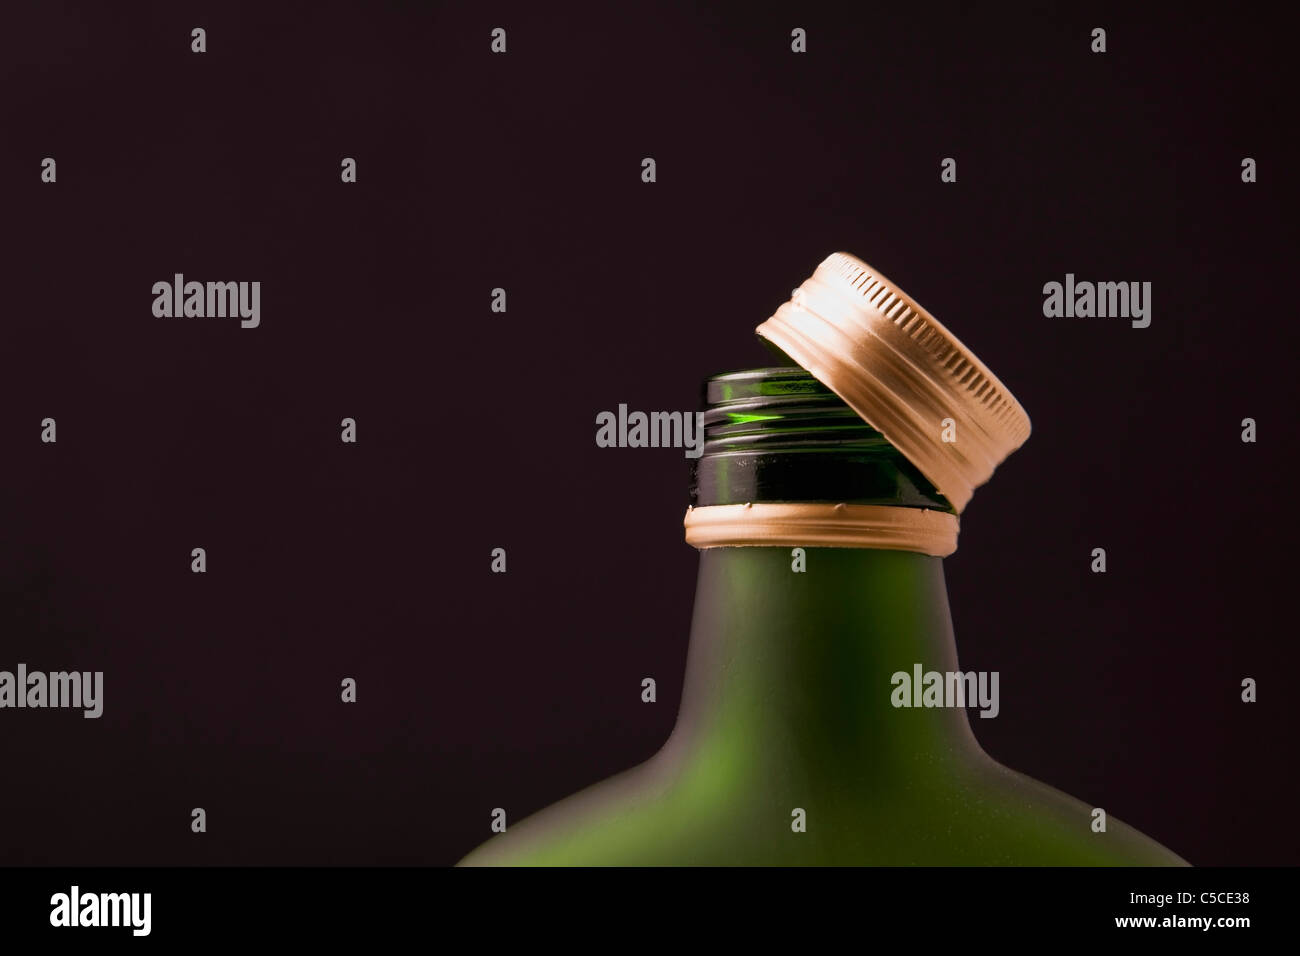 Close-Up Of A Liquor Bottle With The Cap Twisted Off Stock Photo